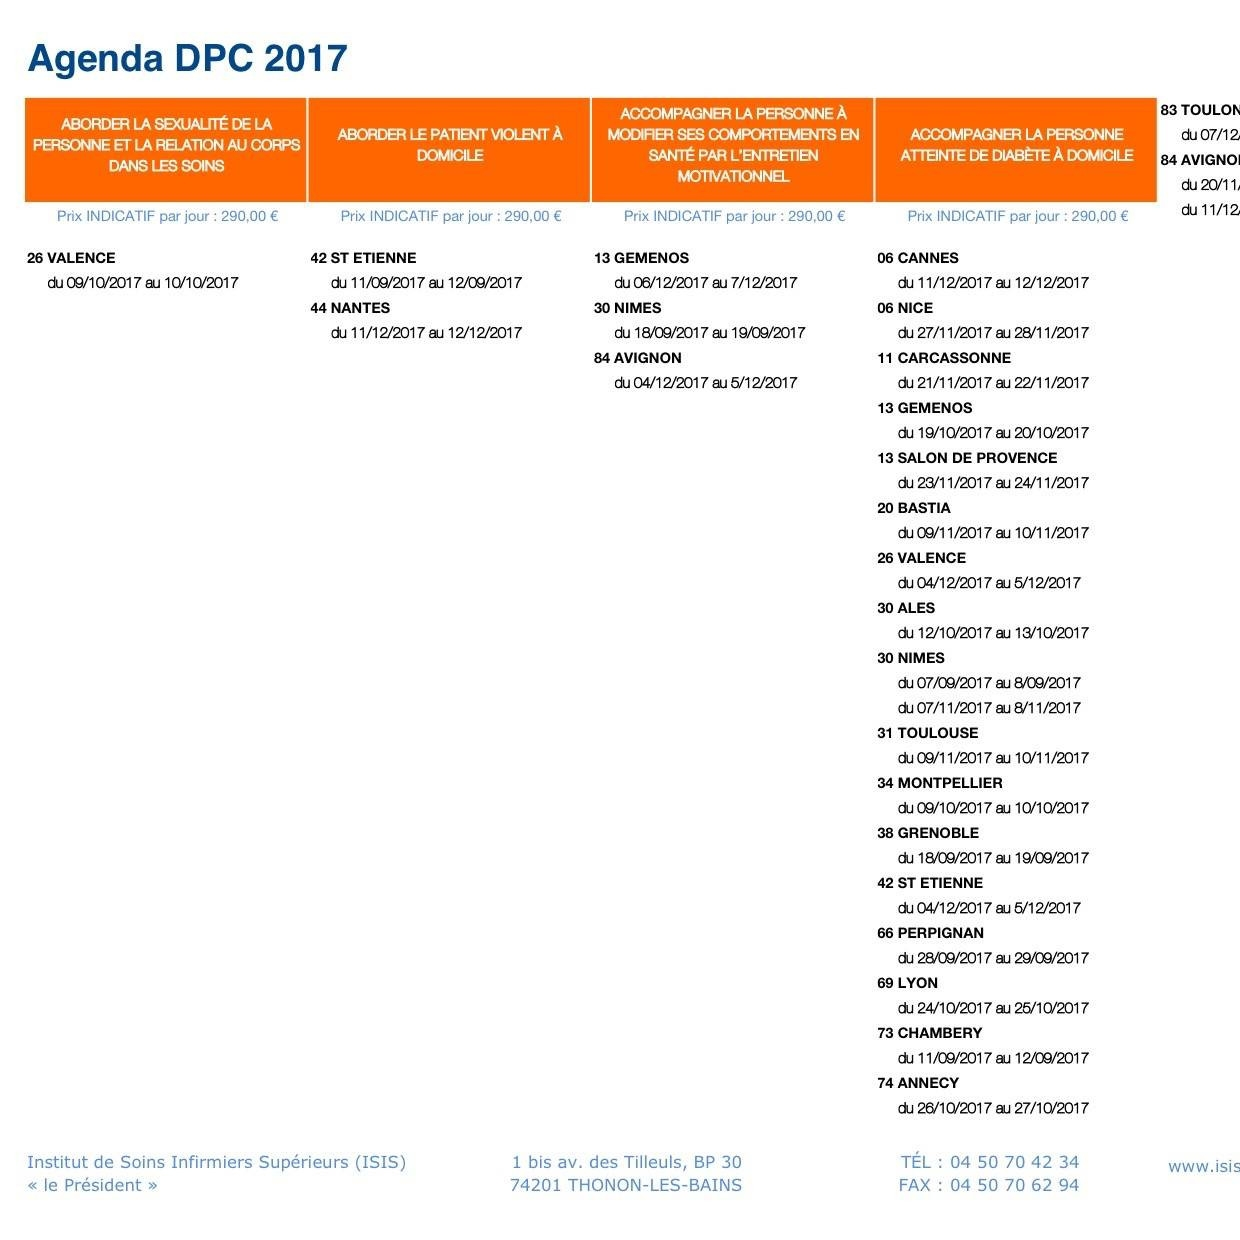 Programmation DPC 2017 ISIS Infirmiers